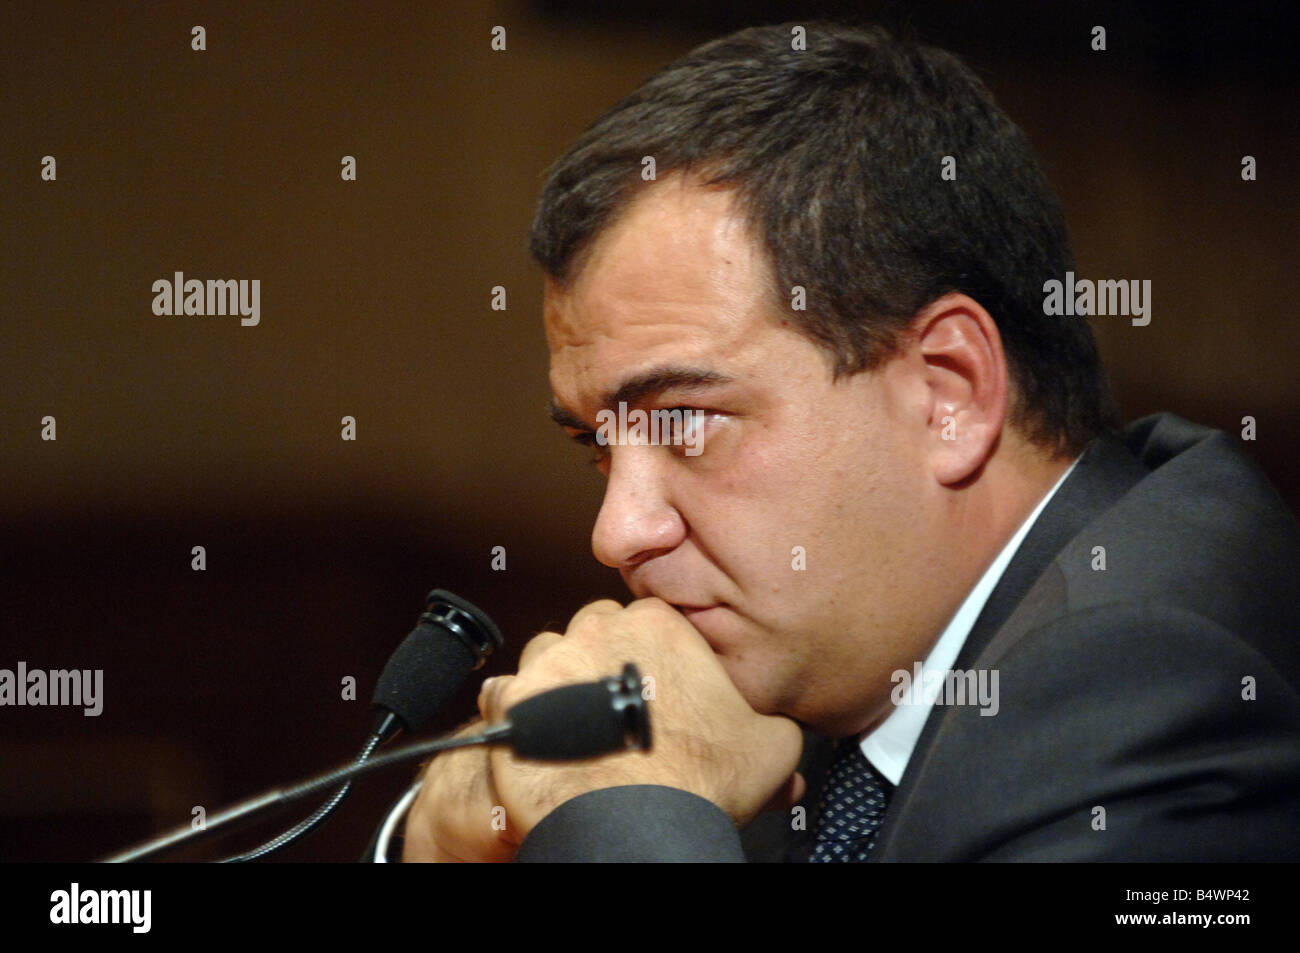 Mario Scaramella during a press conference in the Senate House in Rome, Italy.;Mr Scaramella had lunch in London - Stock Image